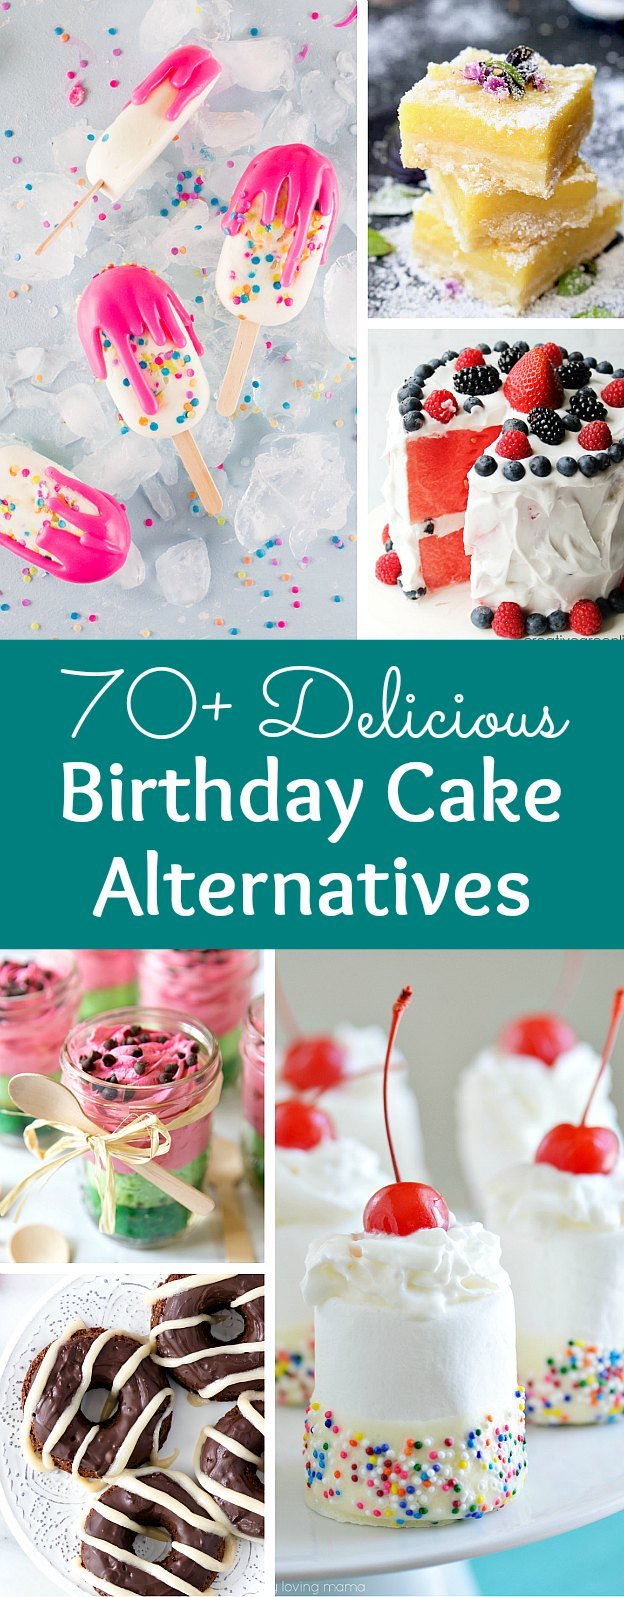 Admirable 70 Creative Birthday Cake Alternatives Hello Little Home Personalised Birthday Cards Cominlily Jamesorg